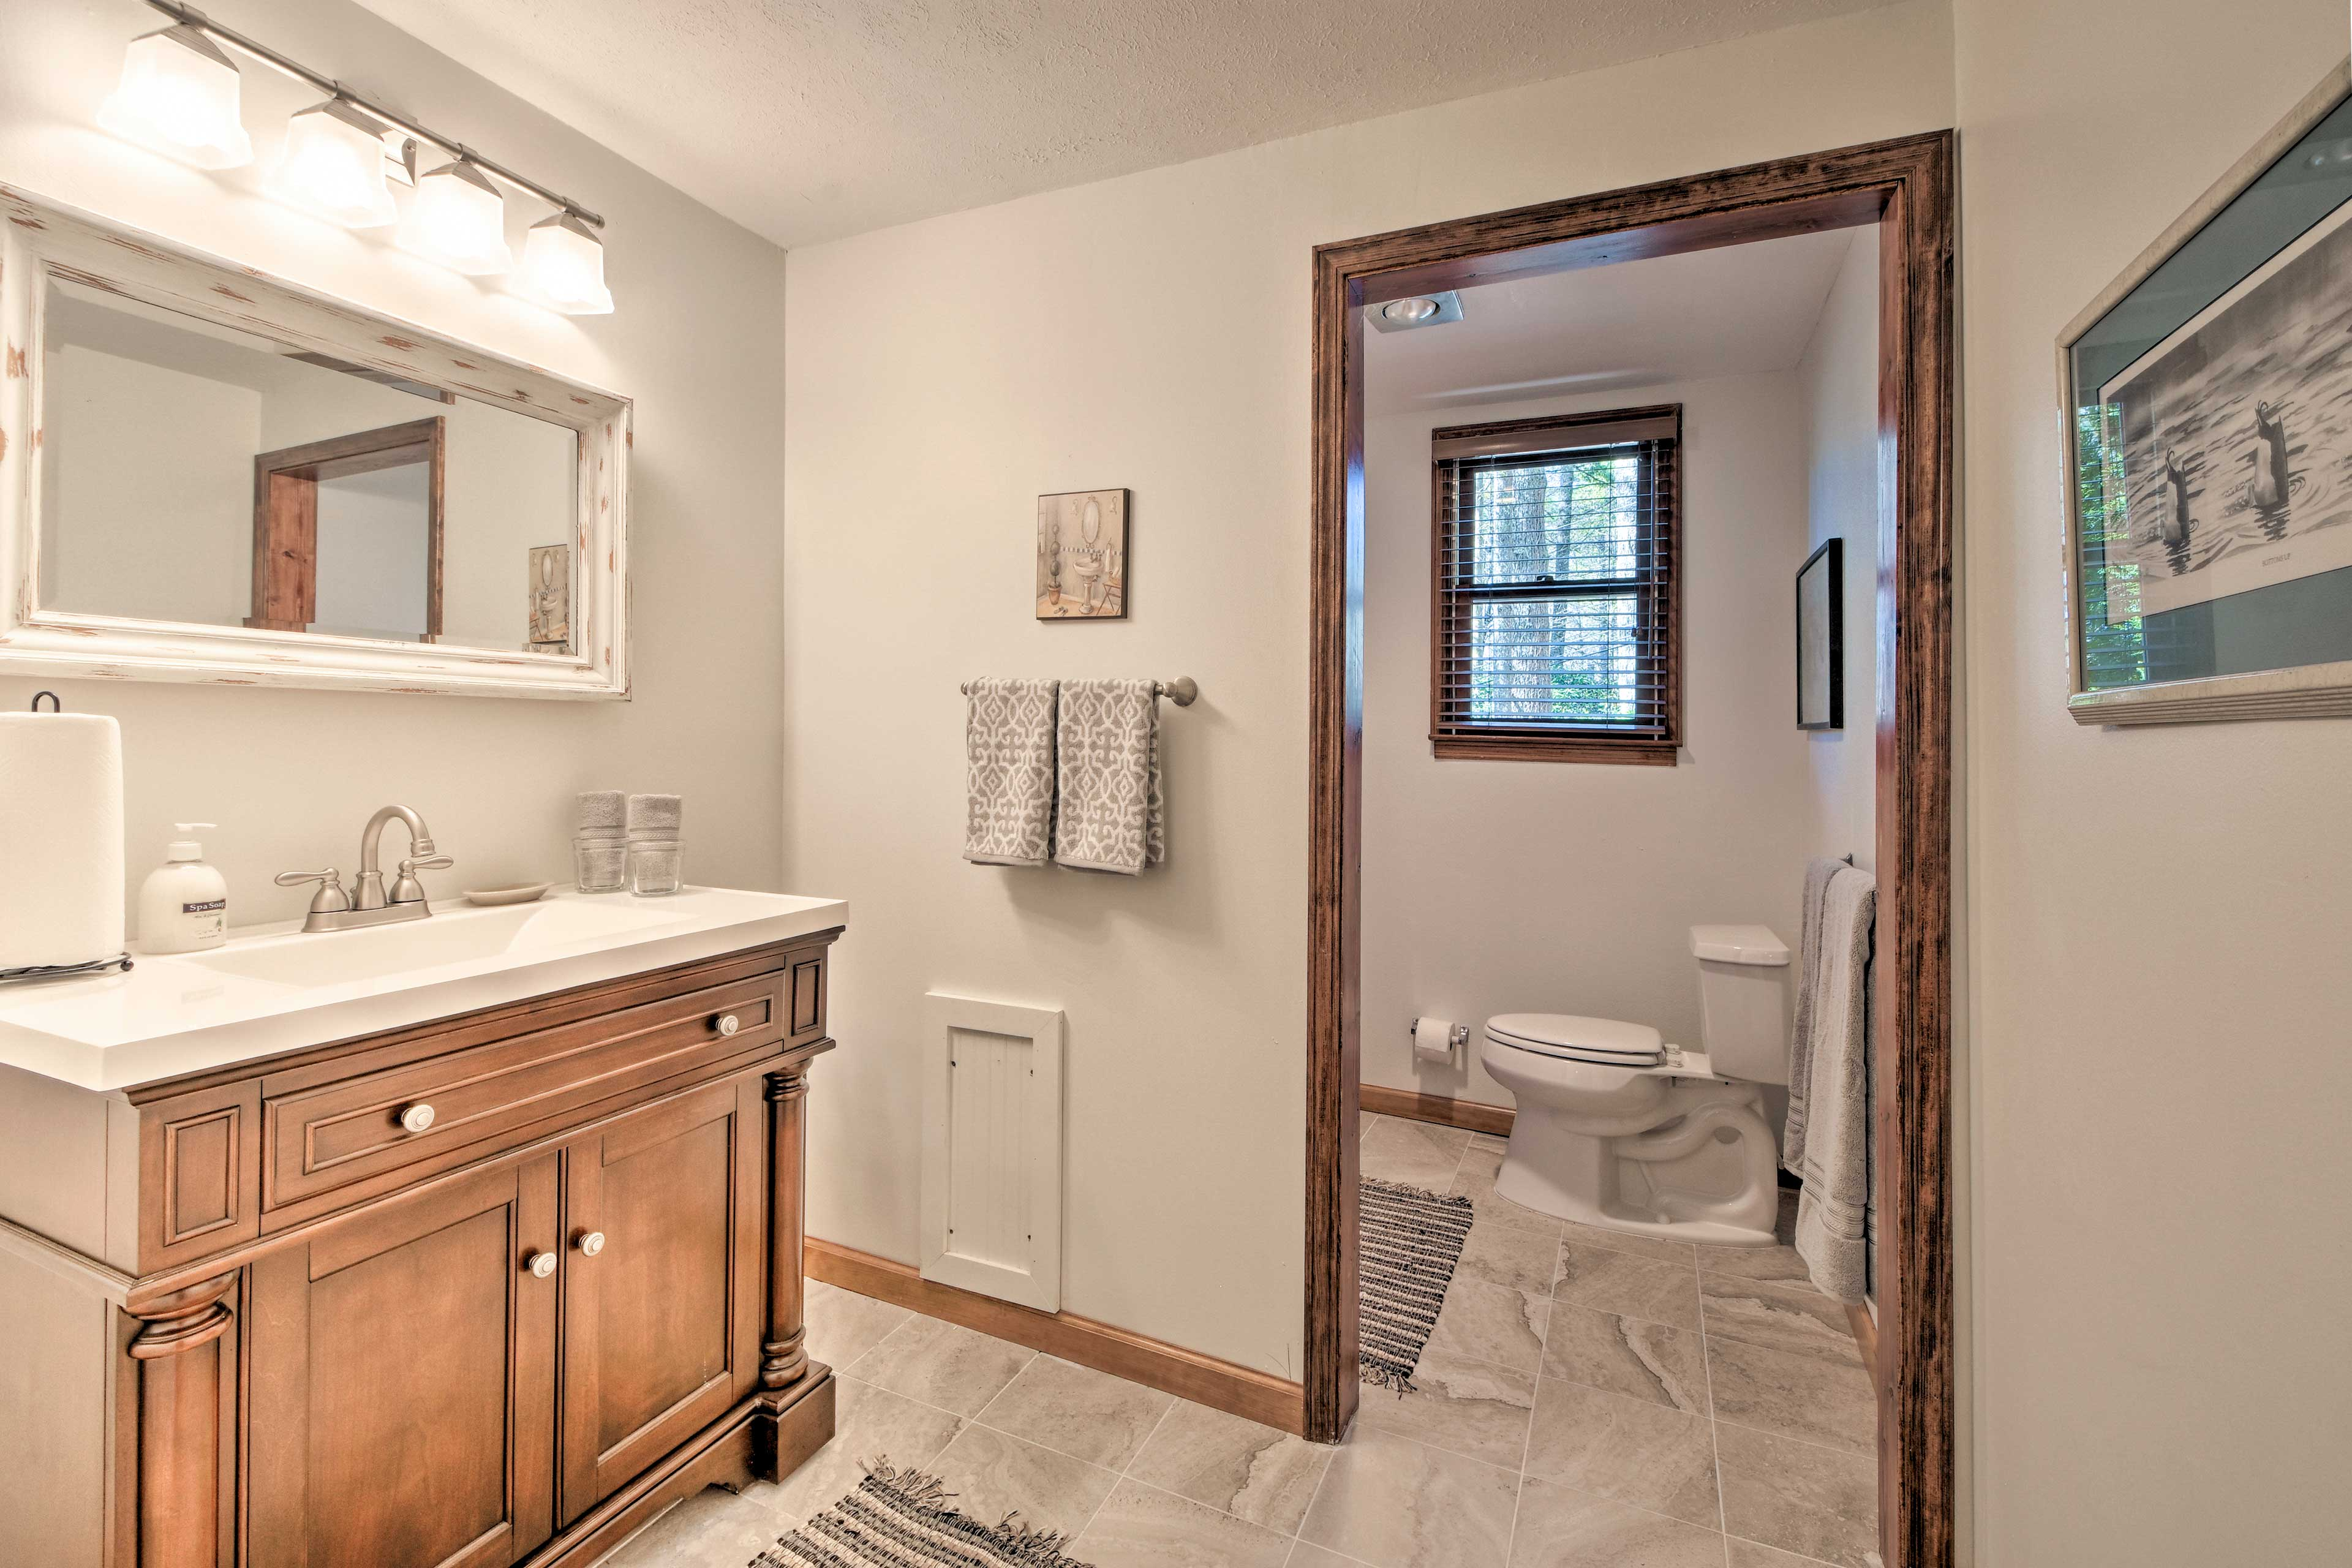 A full bathroom is located downstairs.